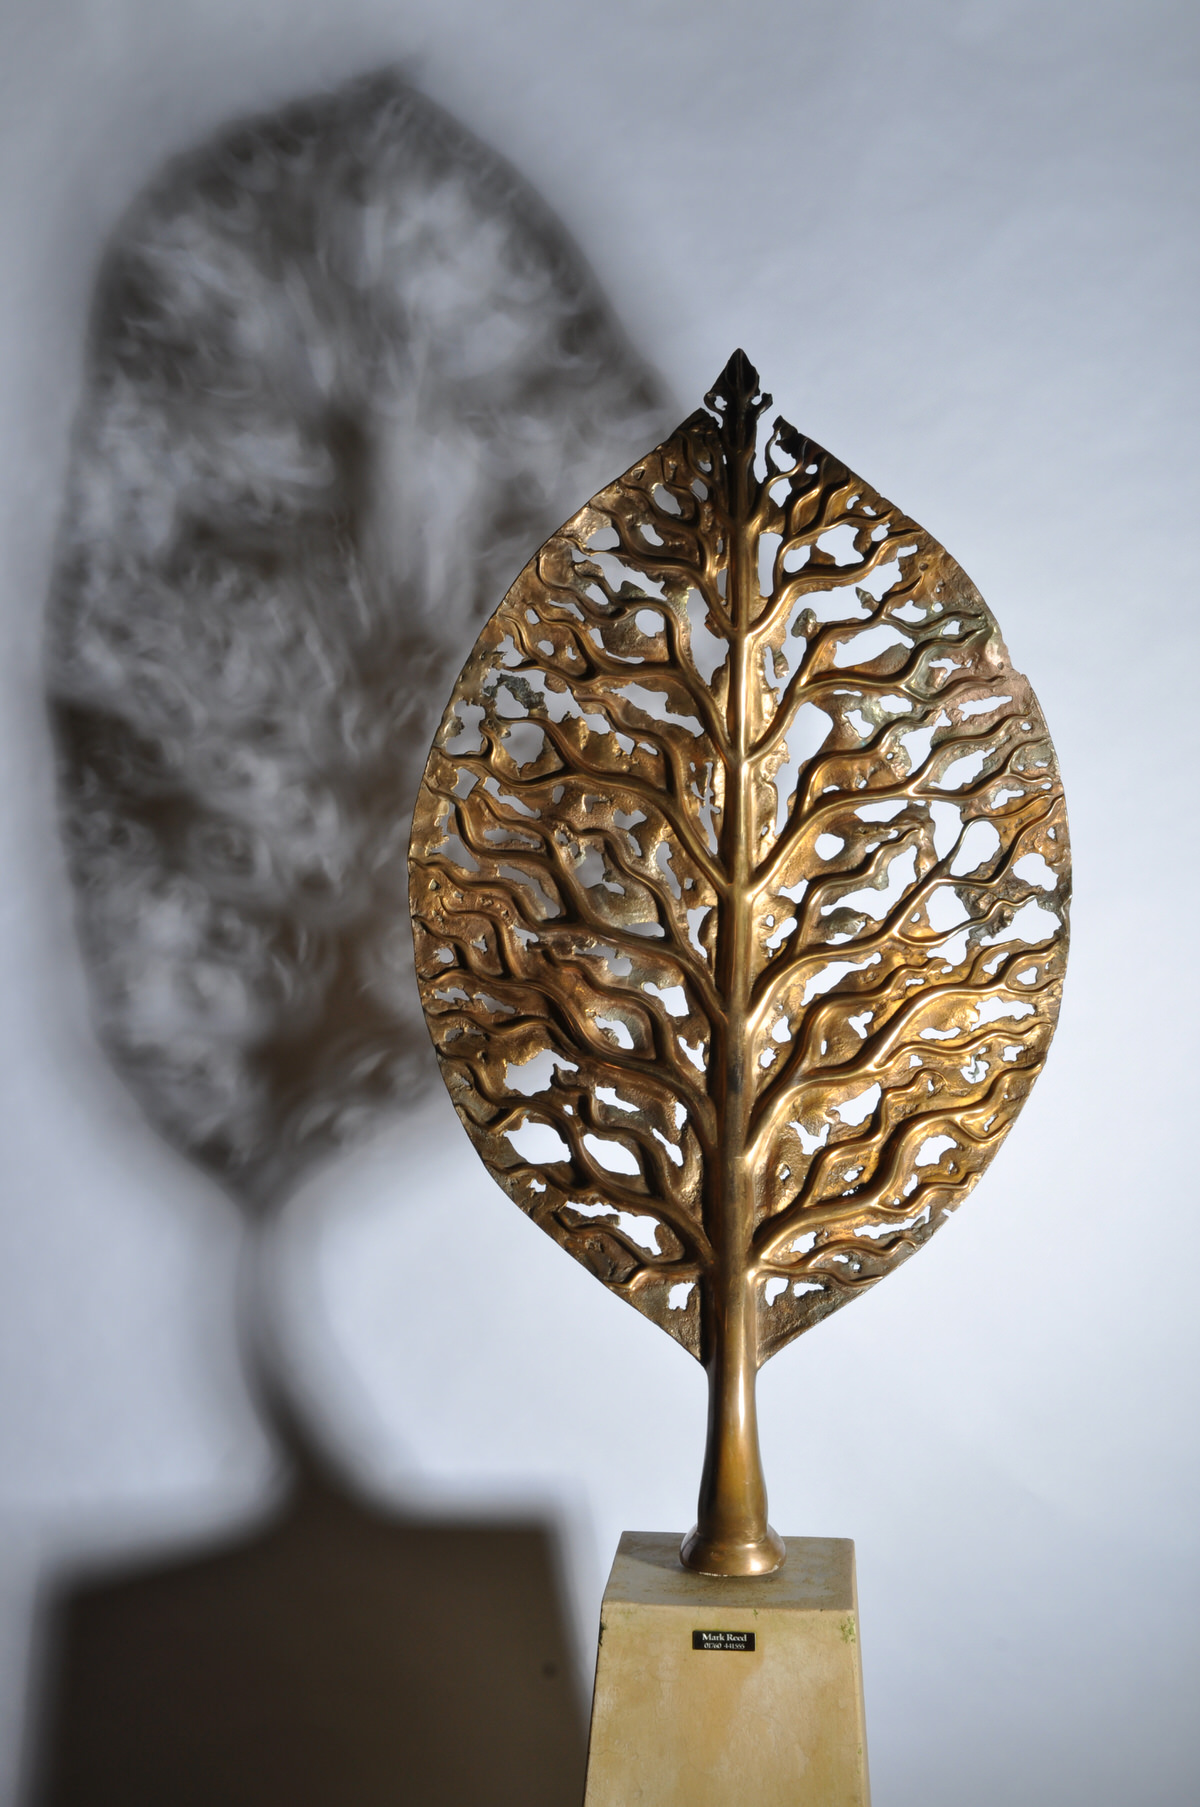 Life Leaf Medium Bronze sculpture  shadow sculpture architect sculpture bespoke sculpture tree sculpture by Mark Reed